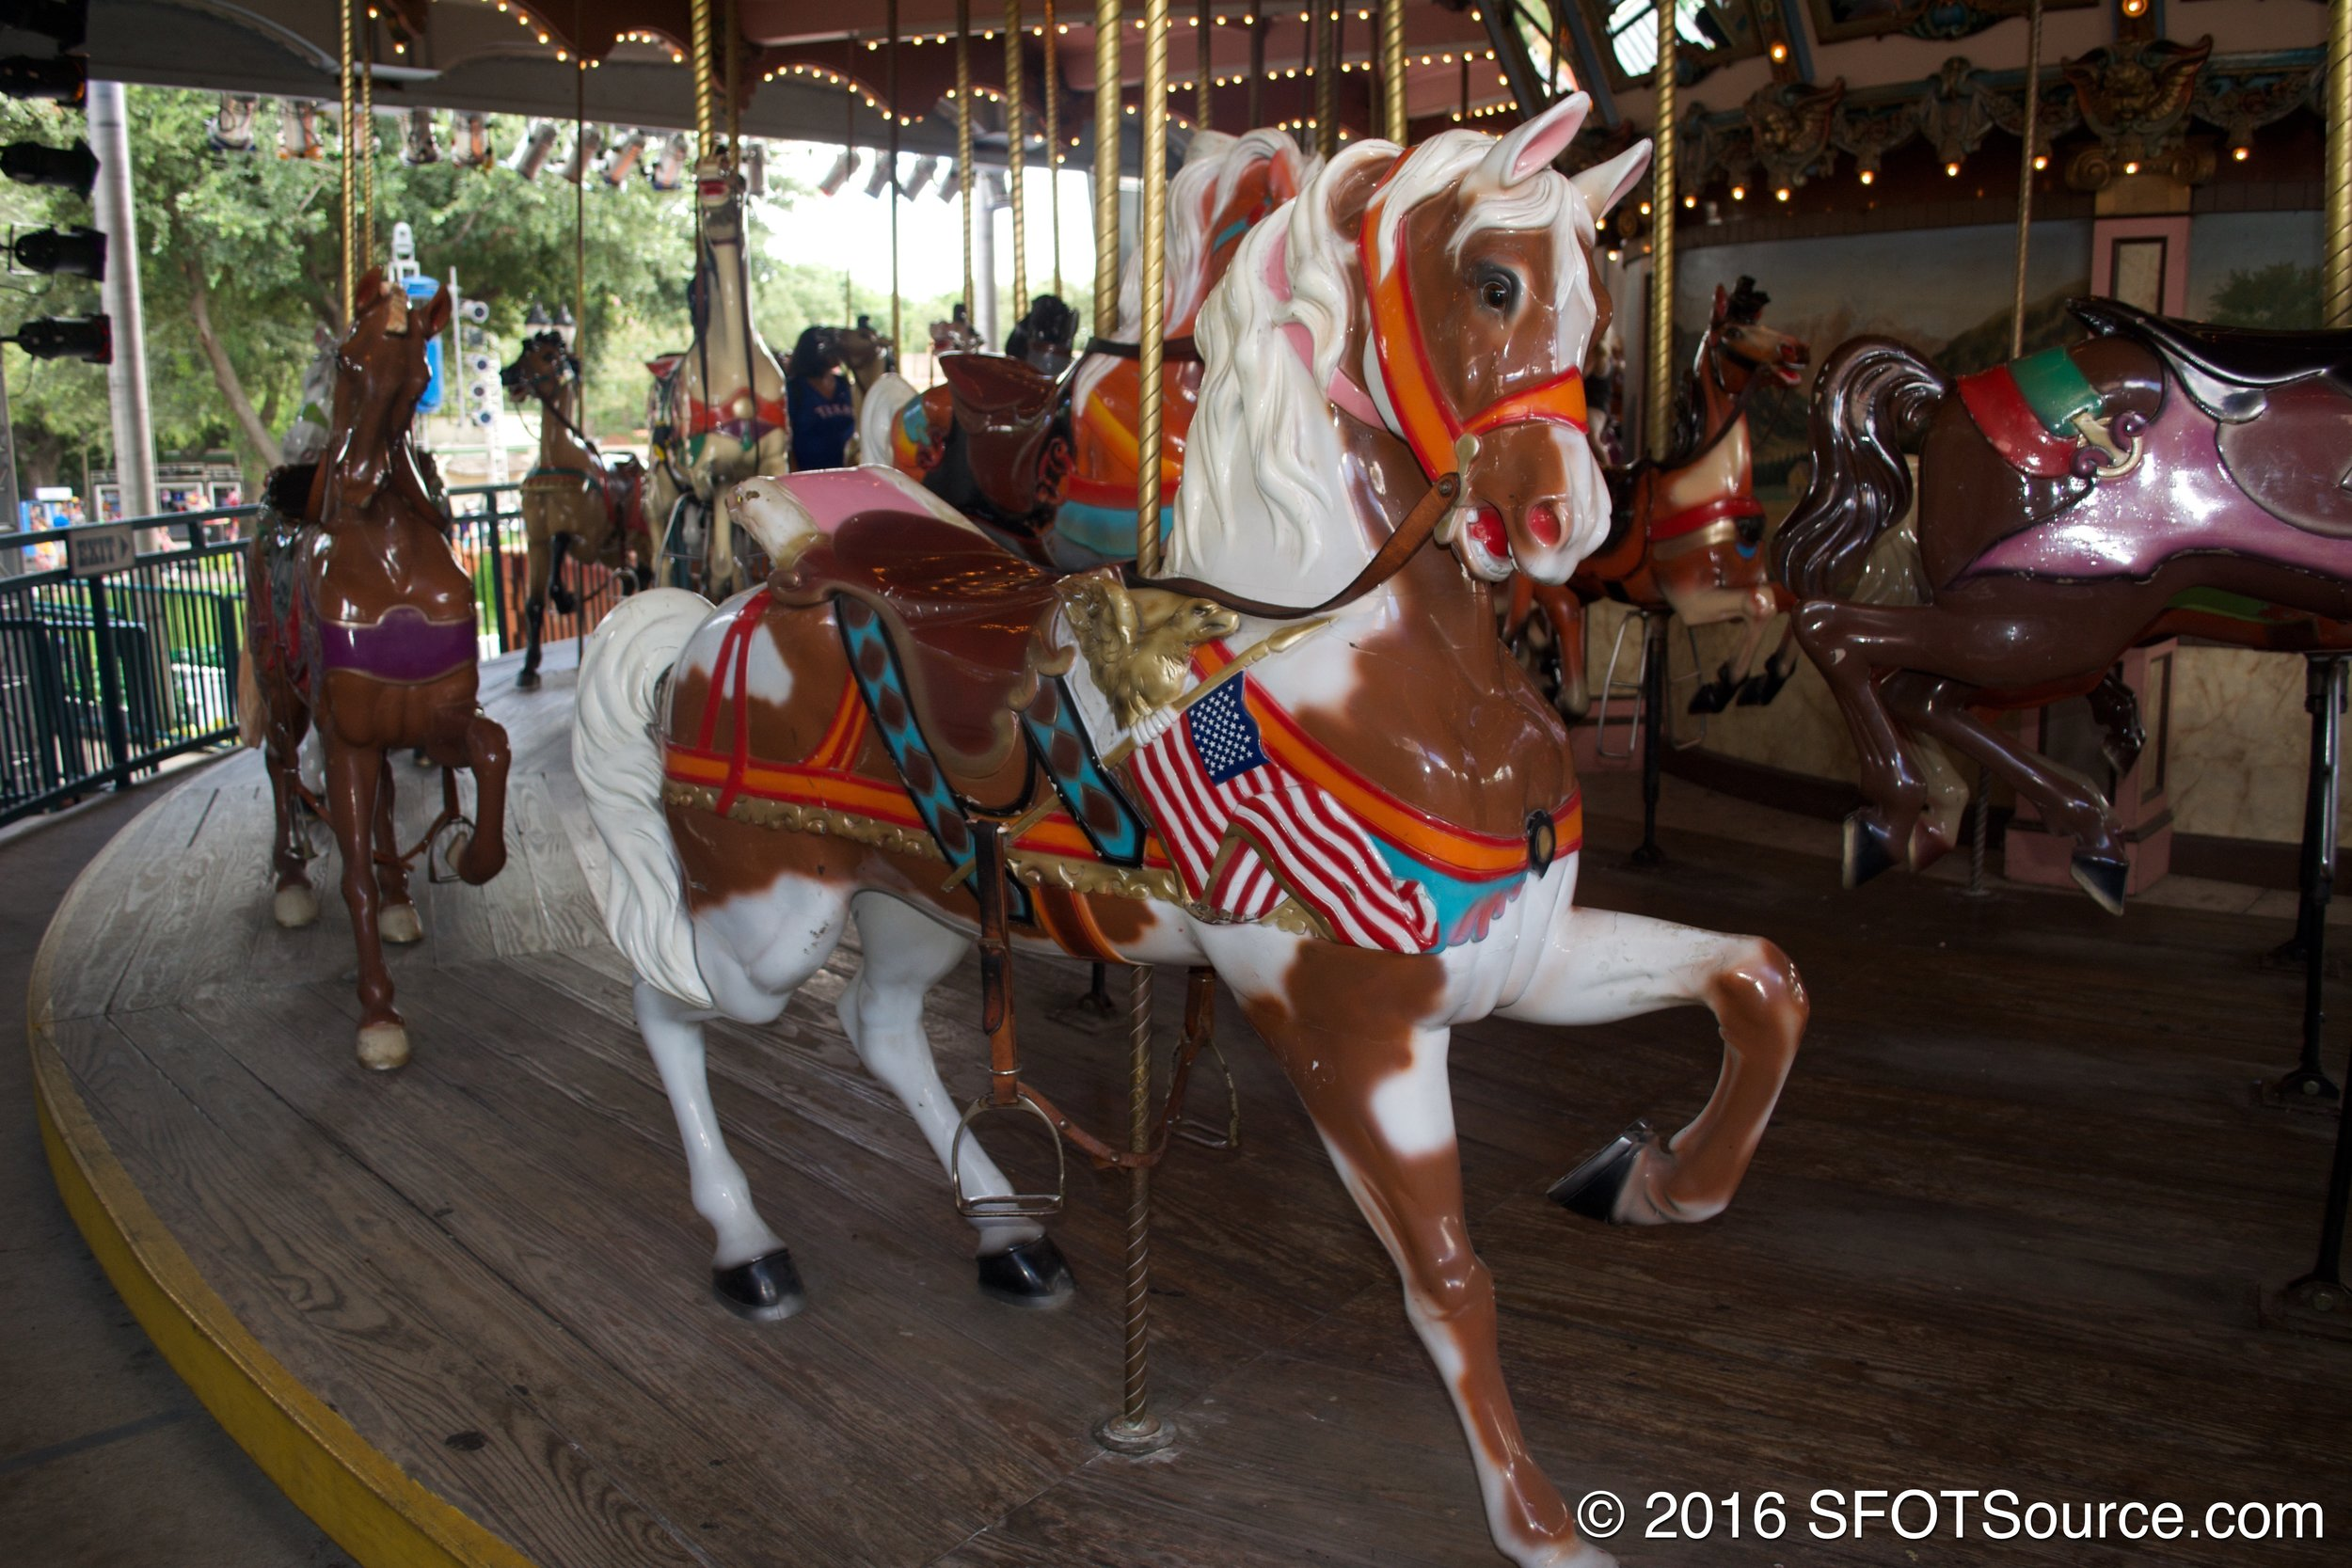 Silver Star Carousel is a classic carousel attraction.